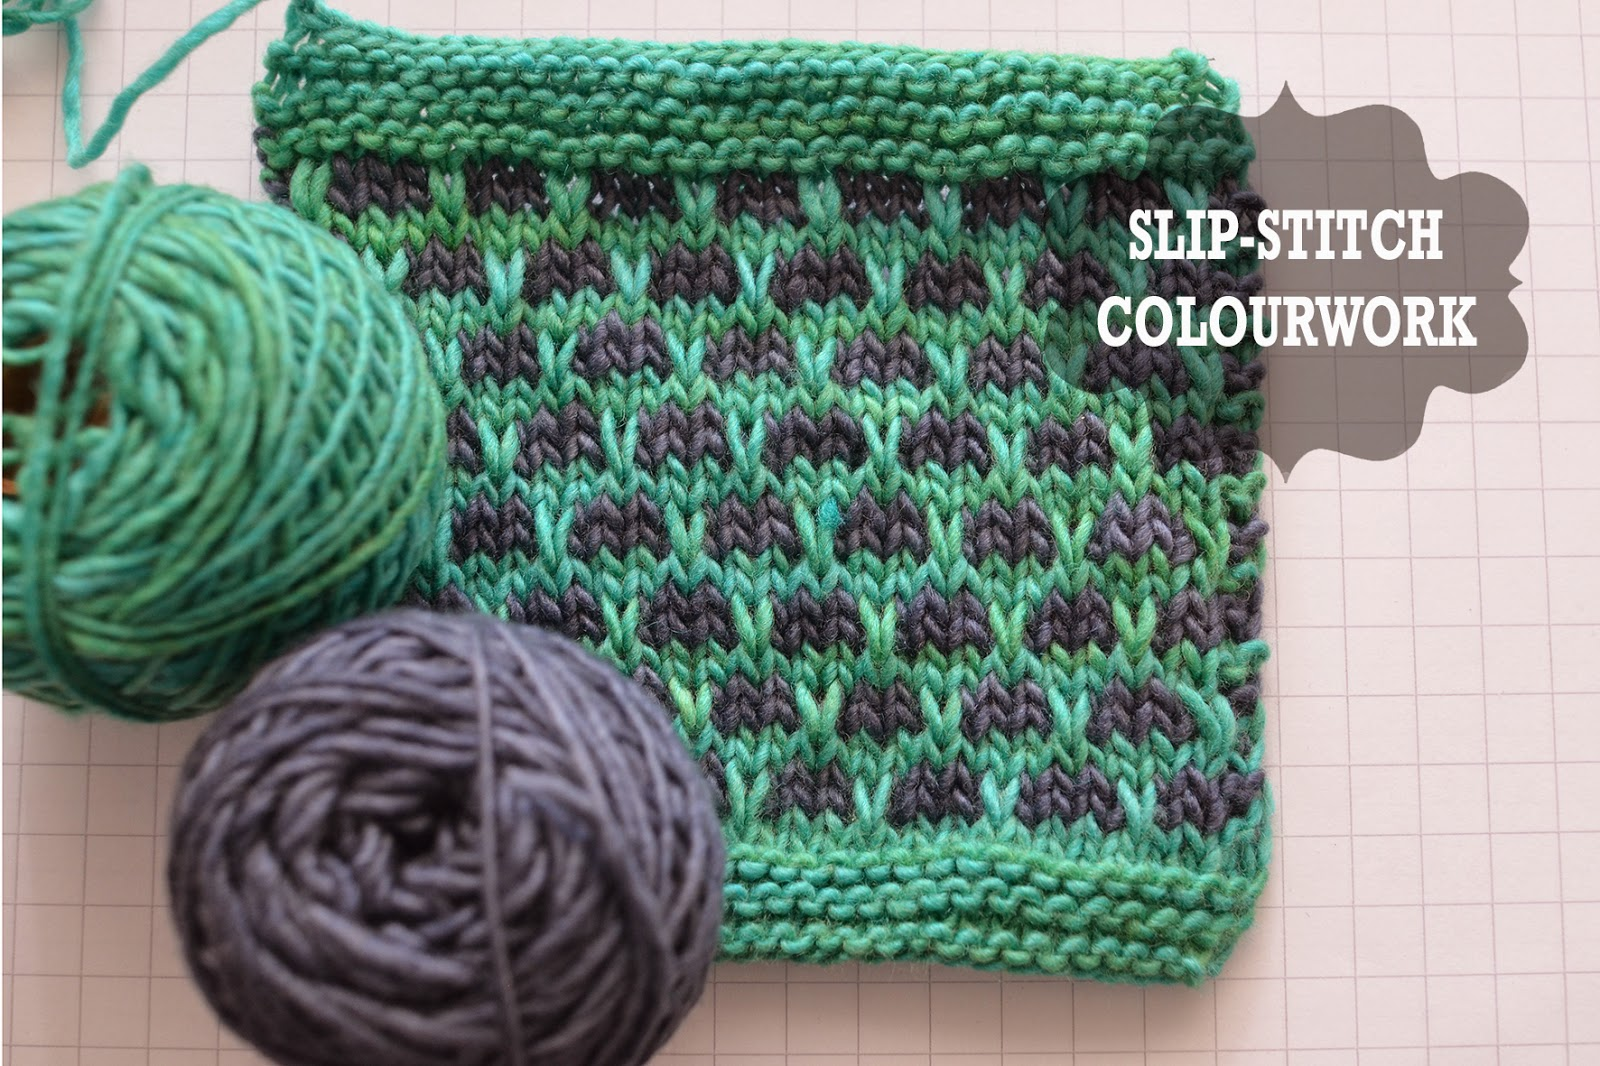 Slip Stitch Knitting Patterns Free : Katya Frankel: How to: Slip stitch colourwork